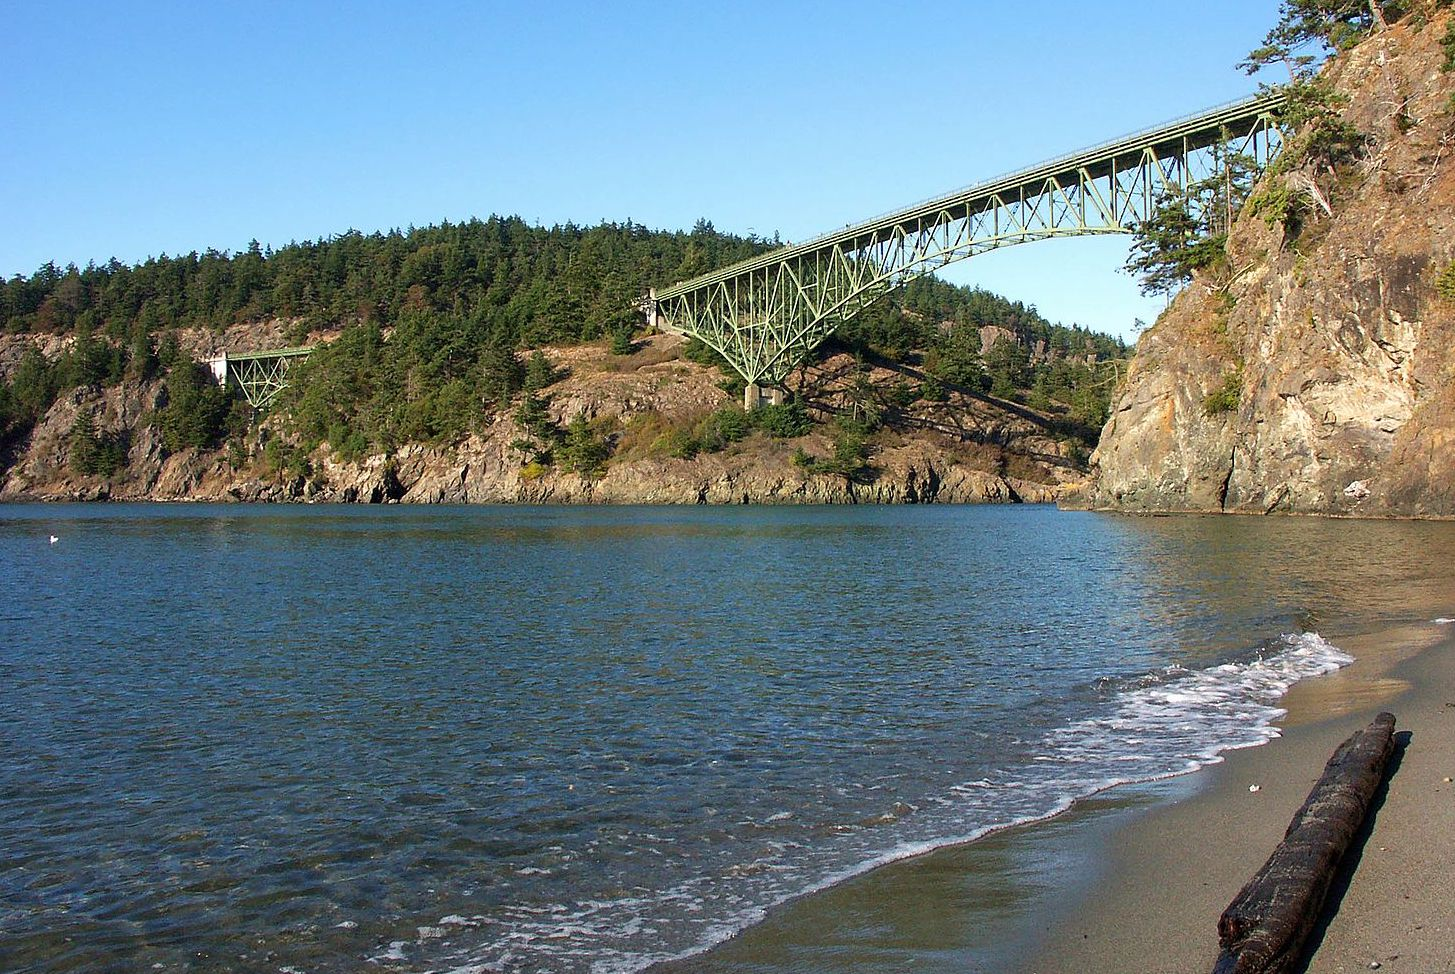 Water and a beach with a view of trees and rocks and a bridge in the distance